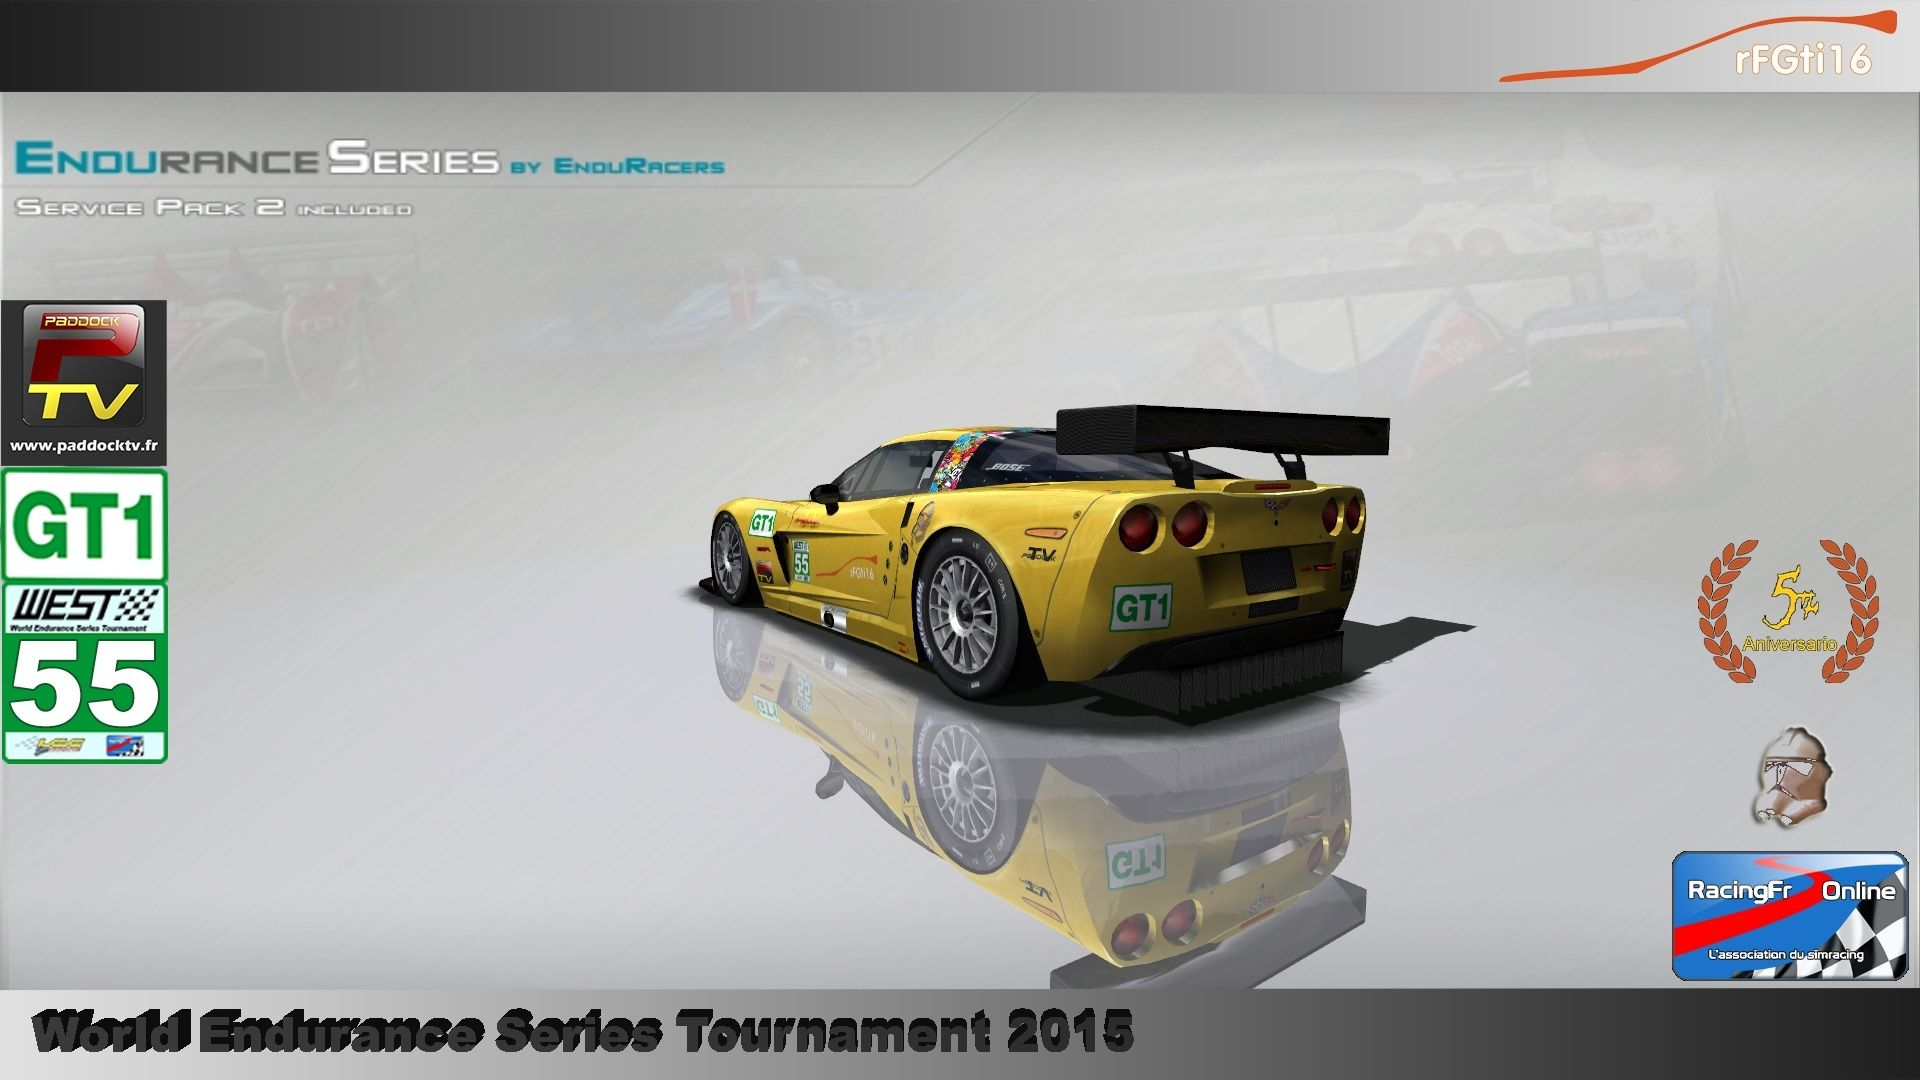 WEST 2015 Endurance Series championship P2/GT1 00410